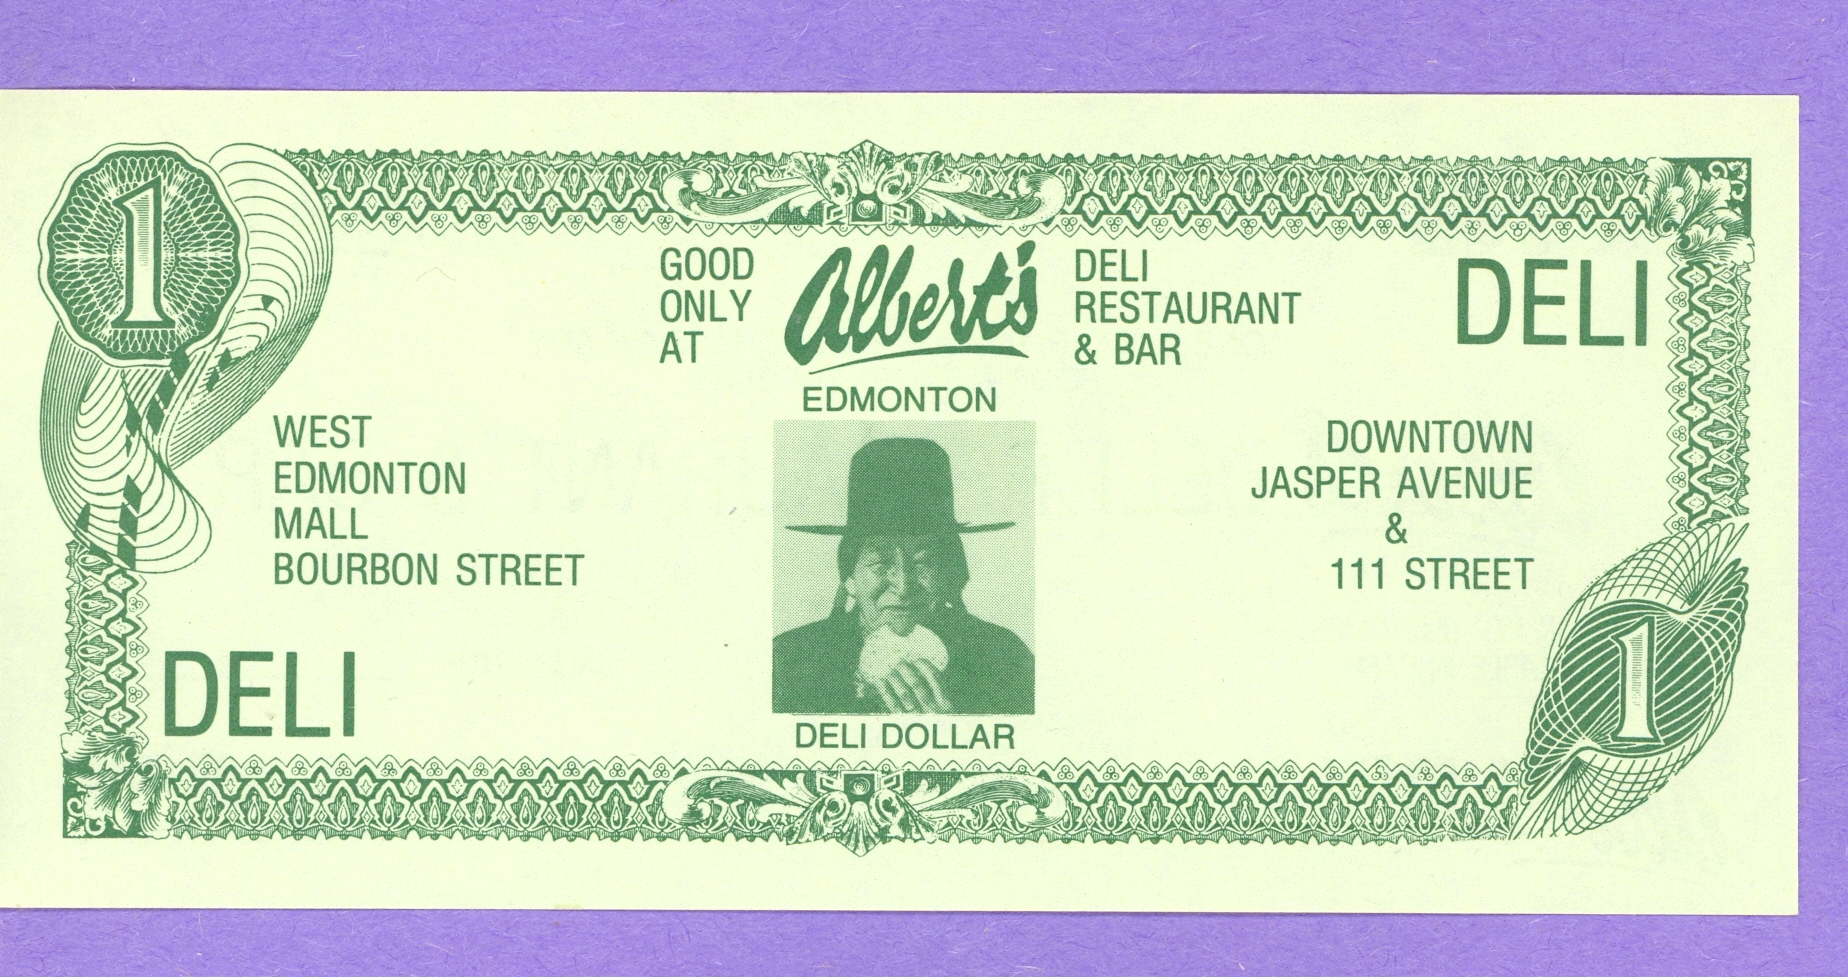 Albert's Deli Dollar Edmonton Alberta West Edmonton Mall and Downtown